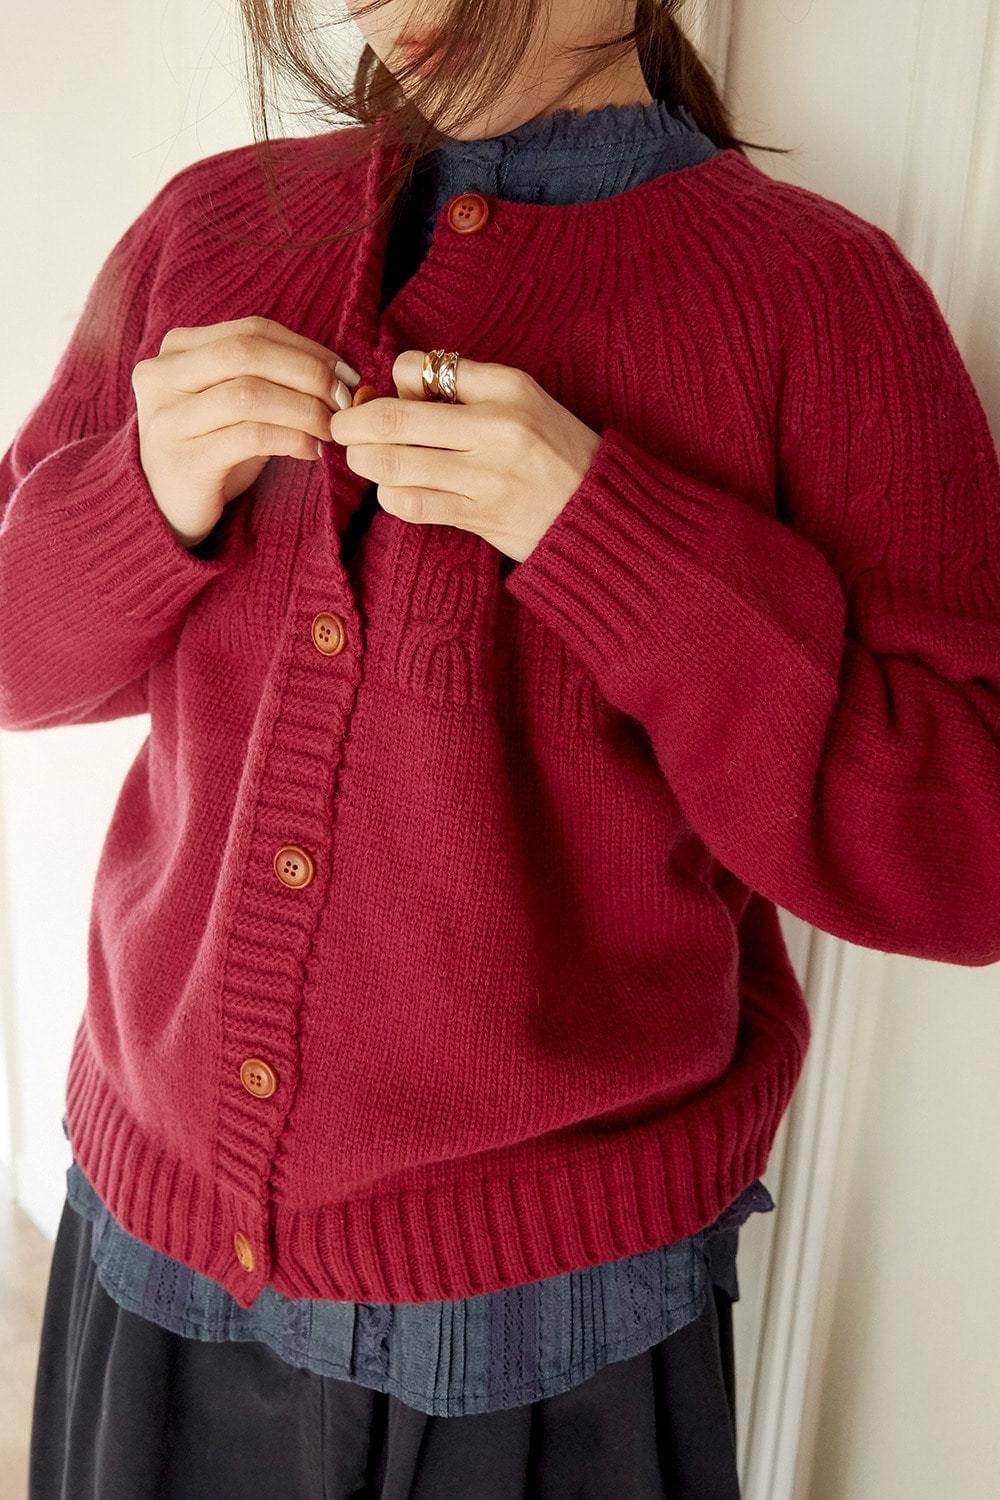 knitting round cardigan (3colors)